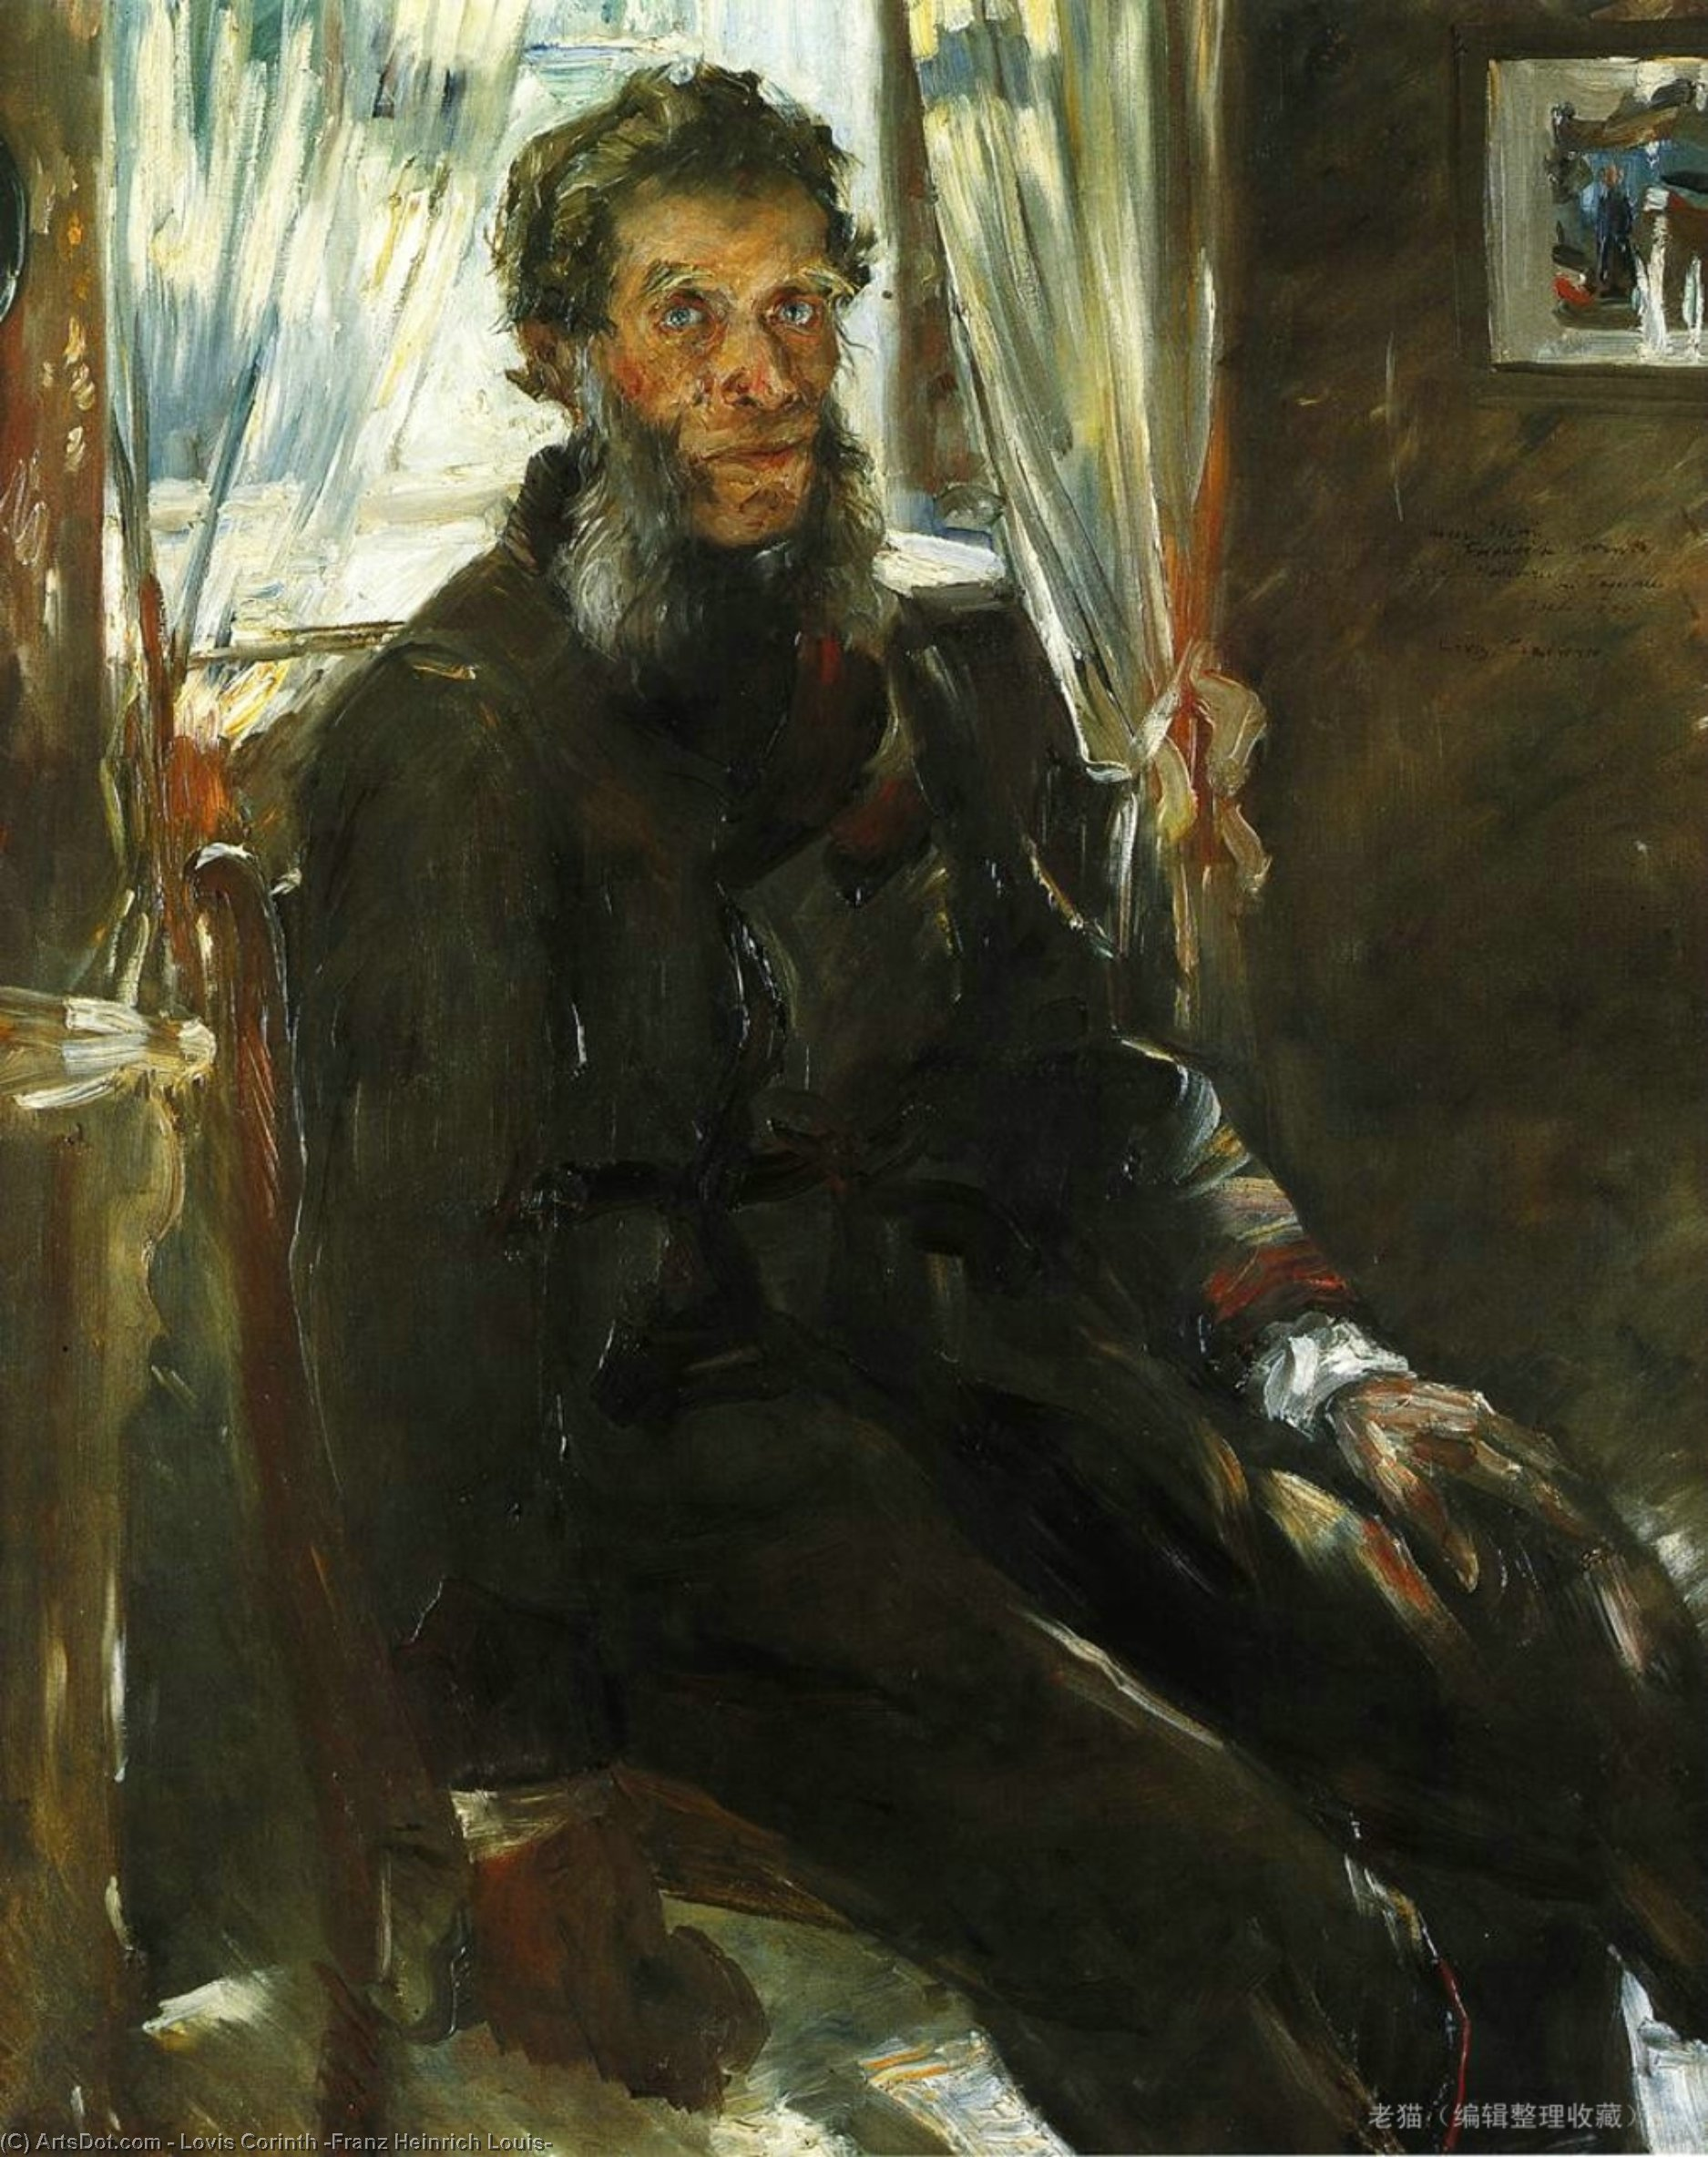 Portrait of the Artist's Uncle, Friedrich Corinth, Oil On Canvas by Lovis Corinth (Franz Heinrich Louis) (1858-1925, Netherlands)